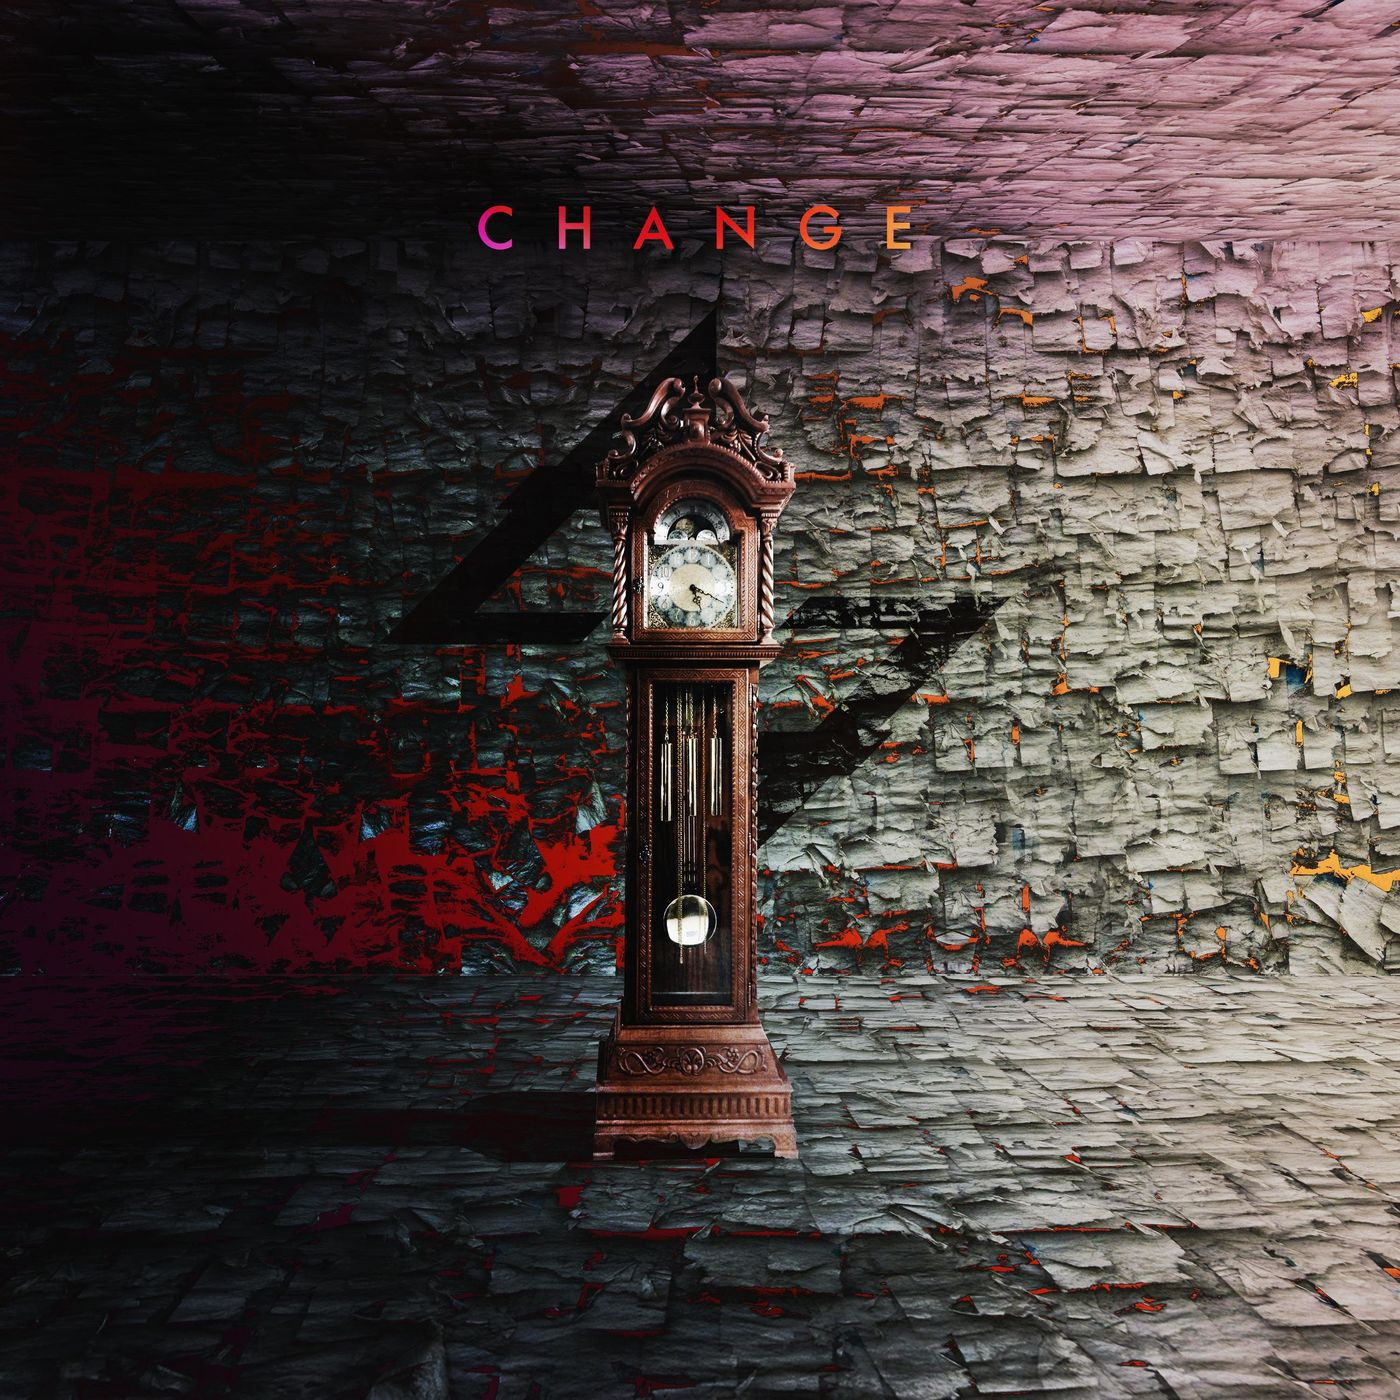 Anchor The Appetite - Change [single] (2020)